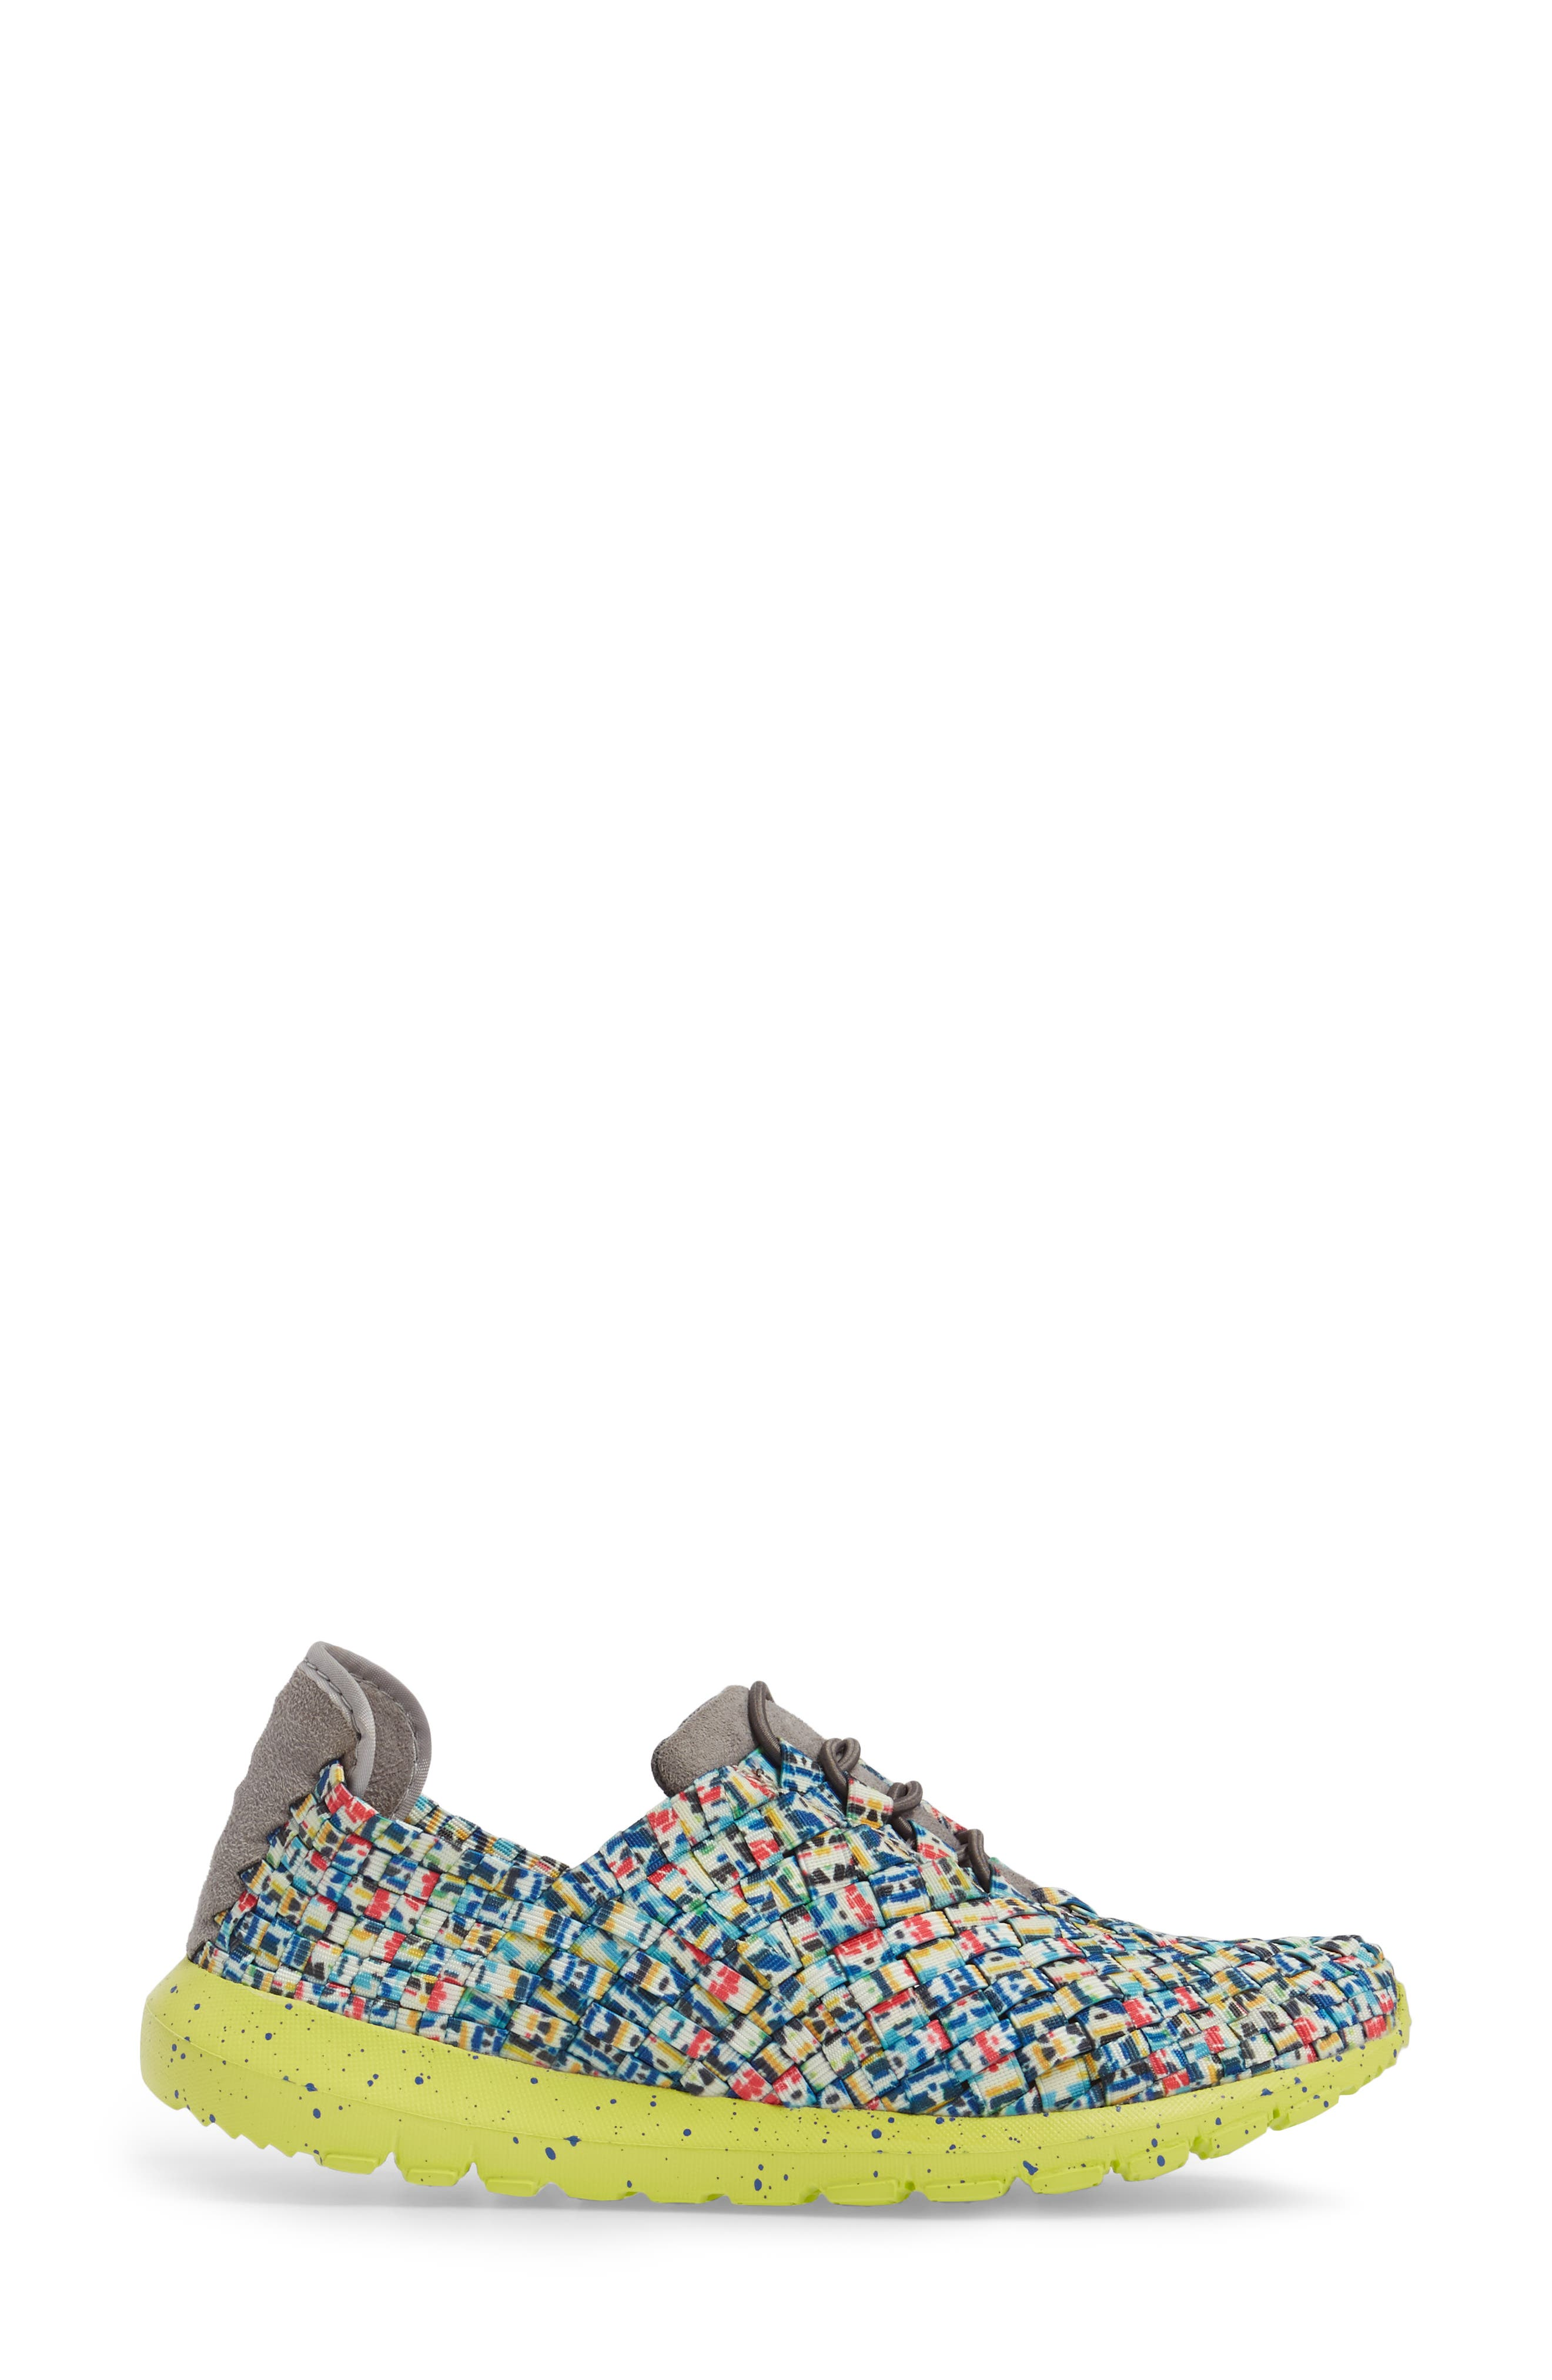 Runners Victoria Sneaker,                             Alternate thumbnail 3, color,                             Pixel Fabric